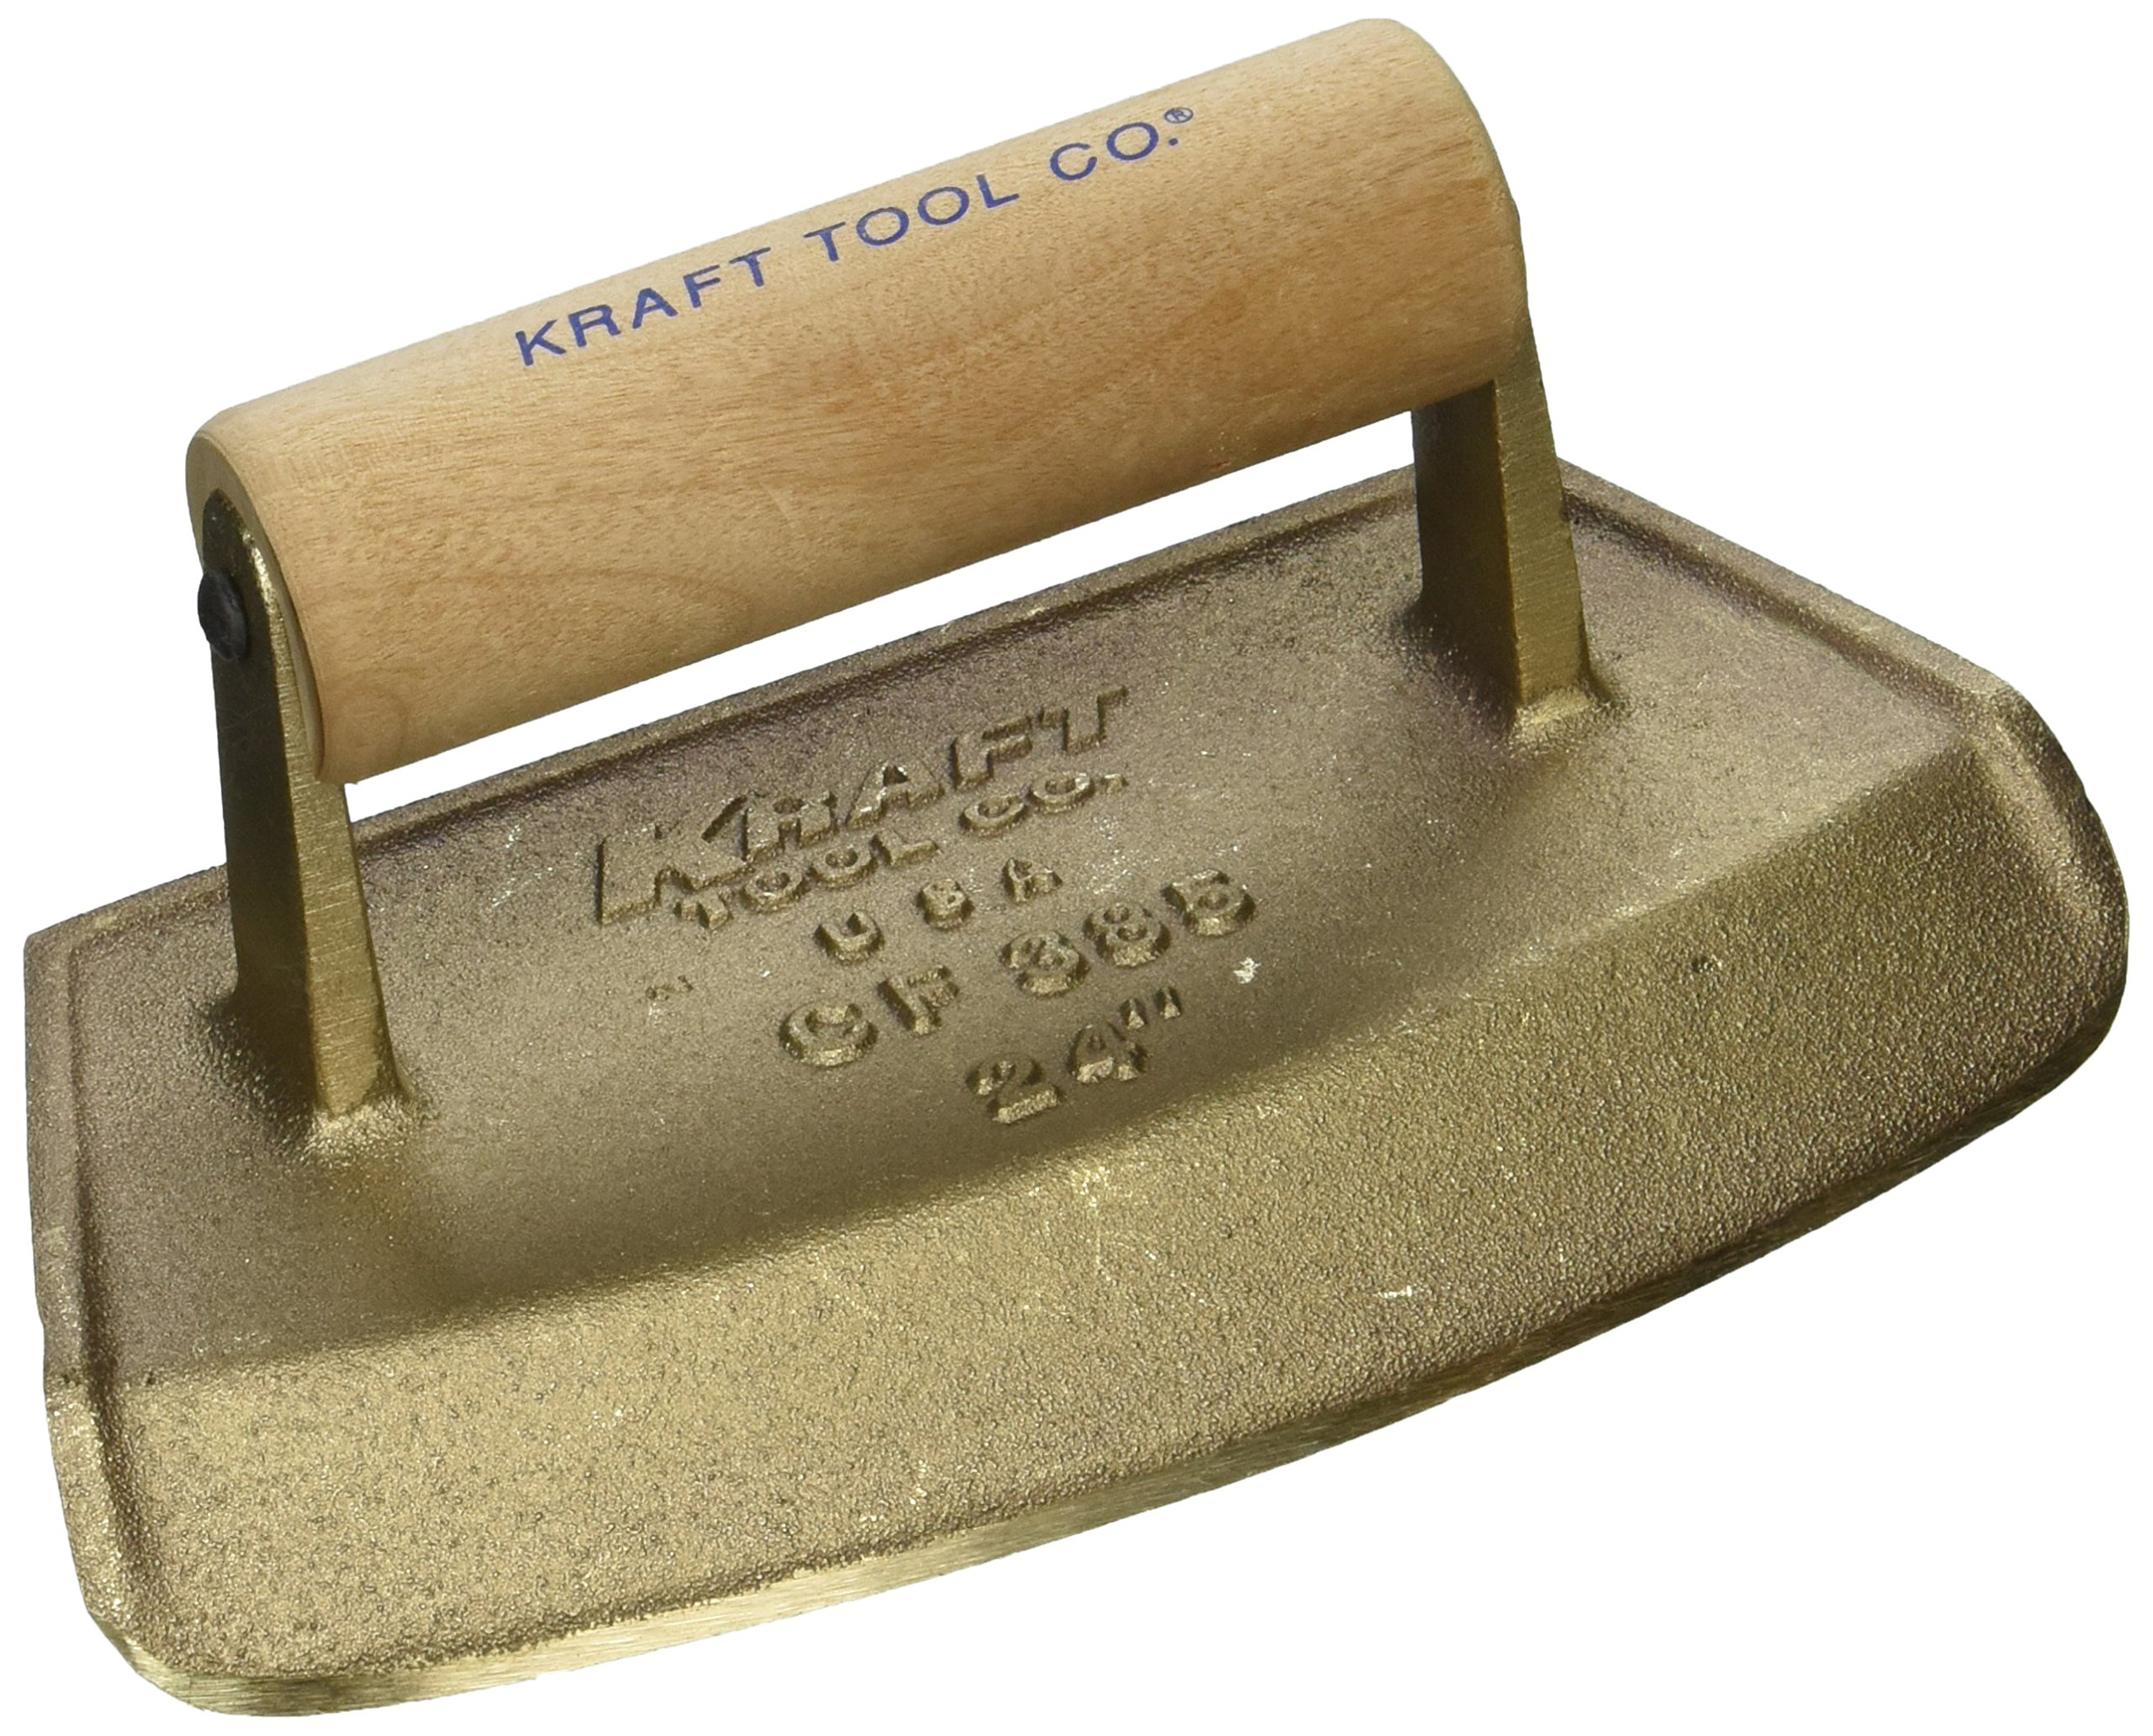 Kraft Tool CF385 Diameter Chamfer Tube Bronze Edger with Wood Handle, 24-Inch by Kraft Tool